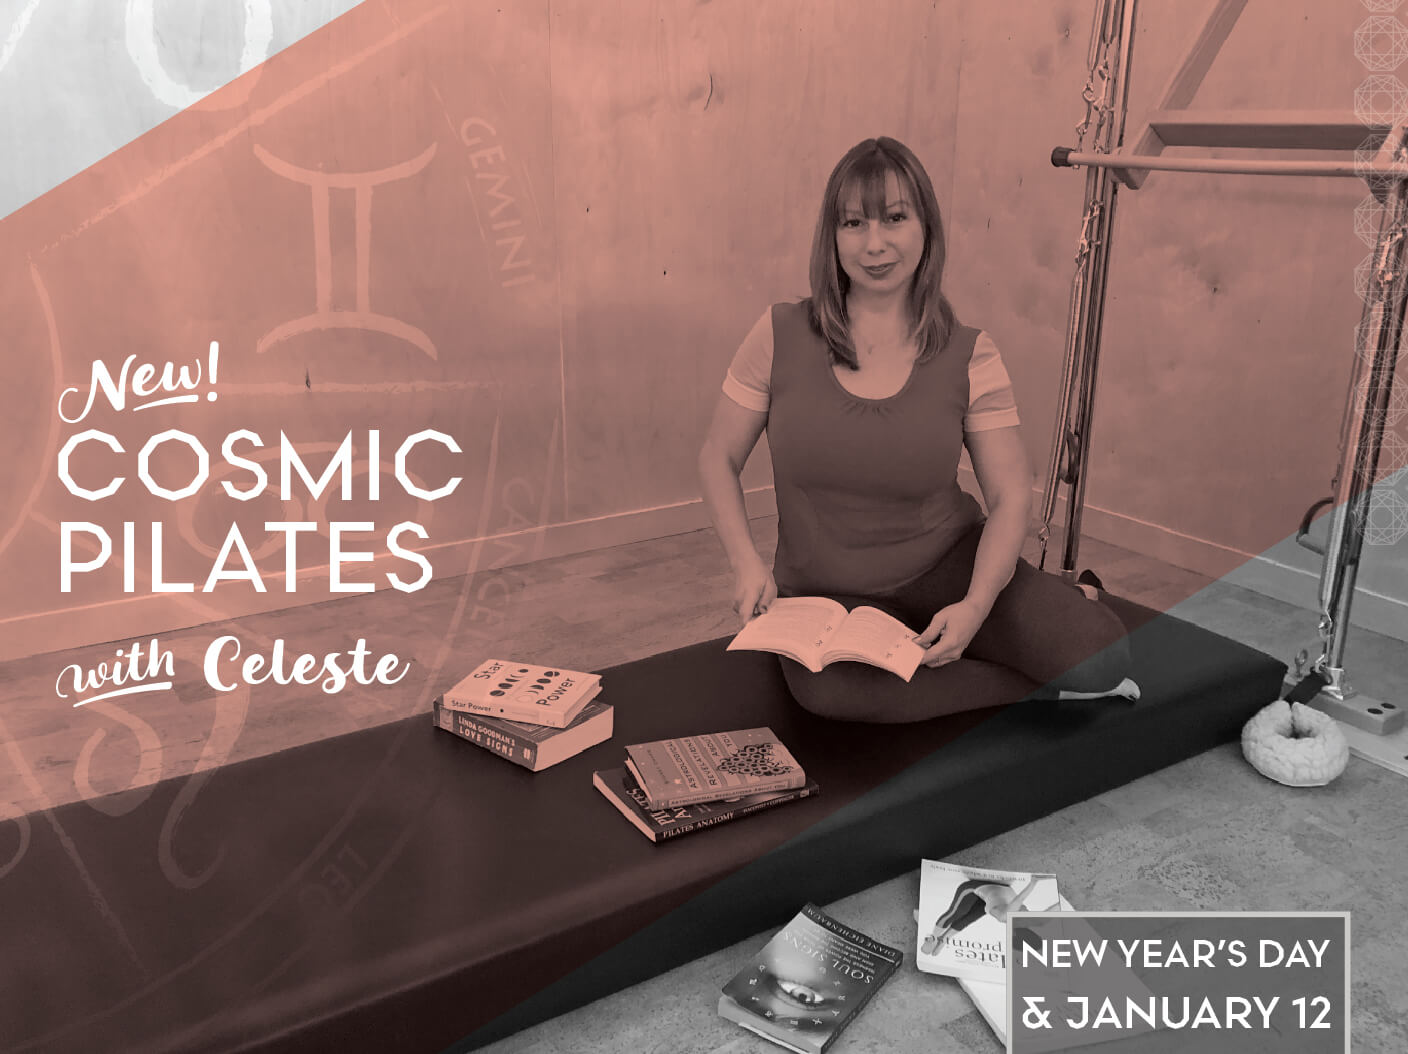 Cosmic Pilates: New Years Day Event